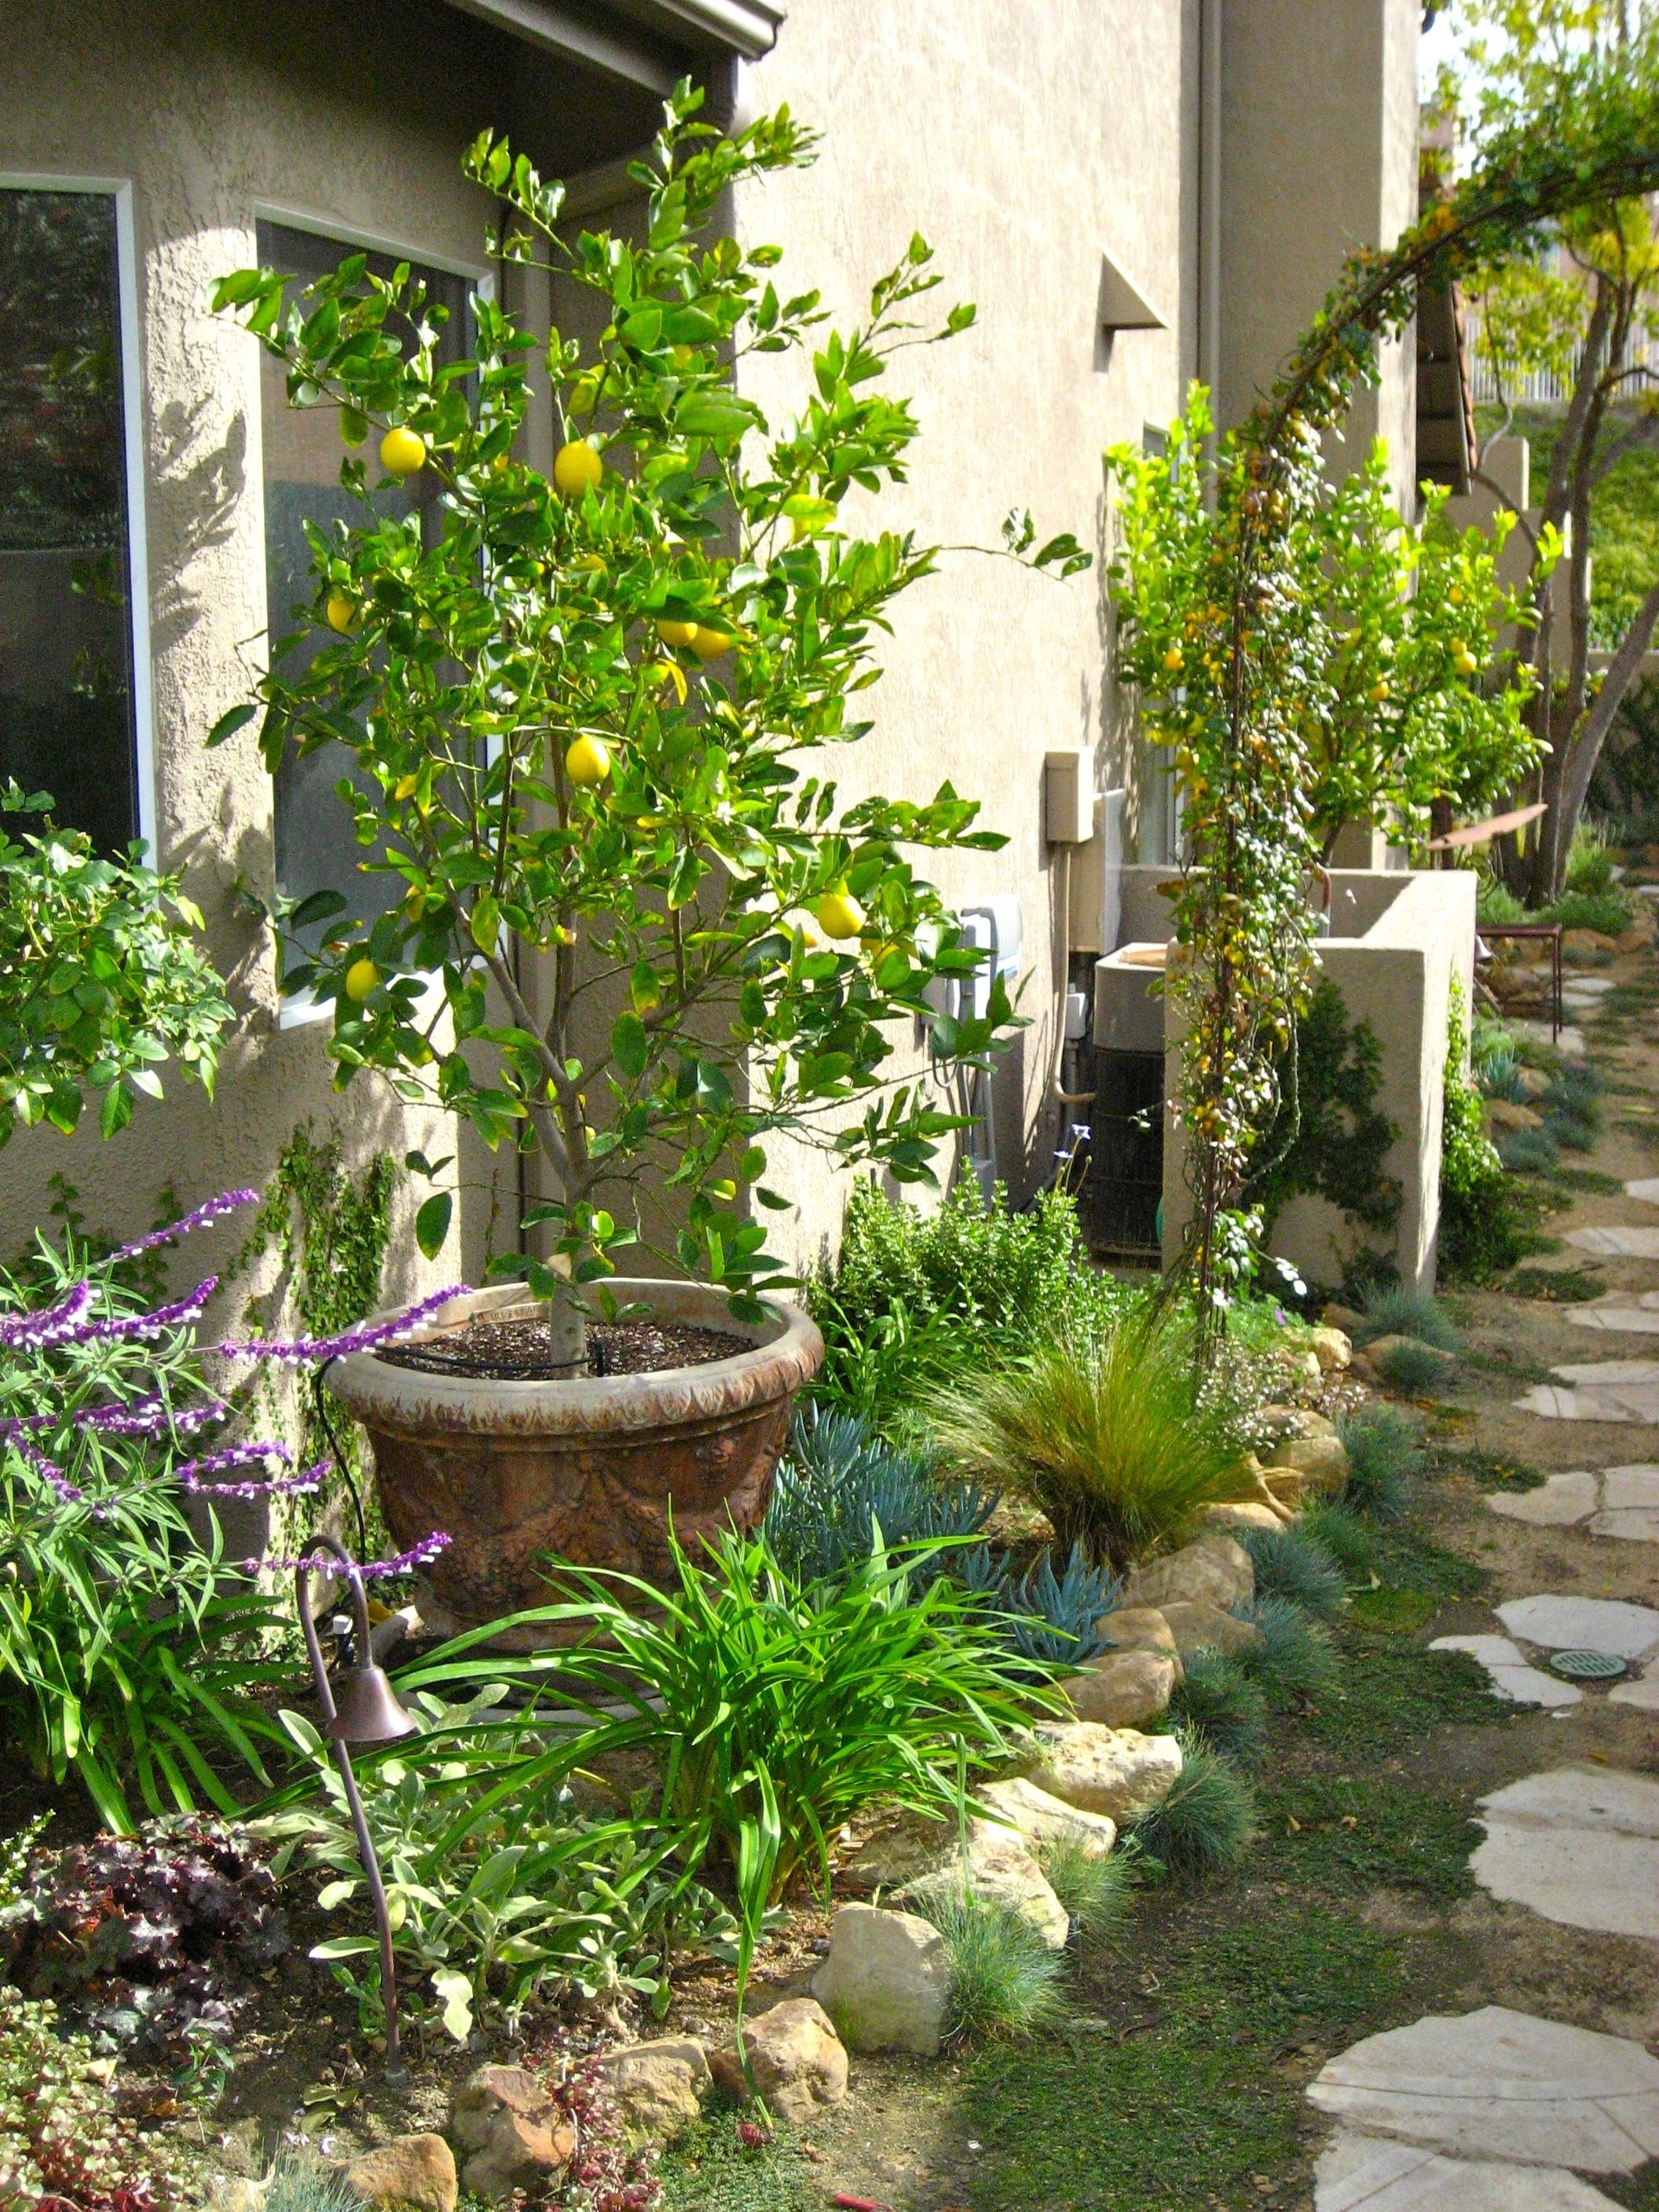 Dwarf Citrus Trees Planted In Containers Within The Small Garden Bed inside Backyard Garden Arcadia Wi